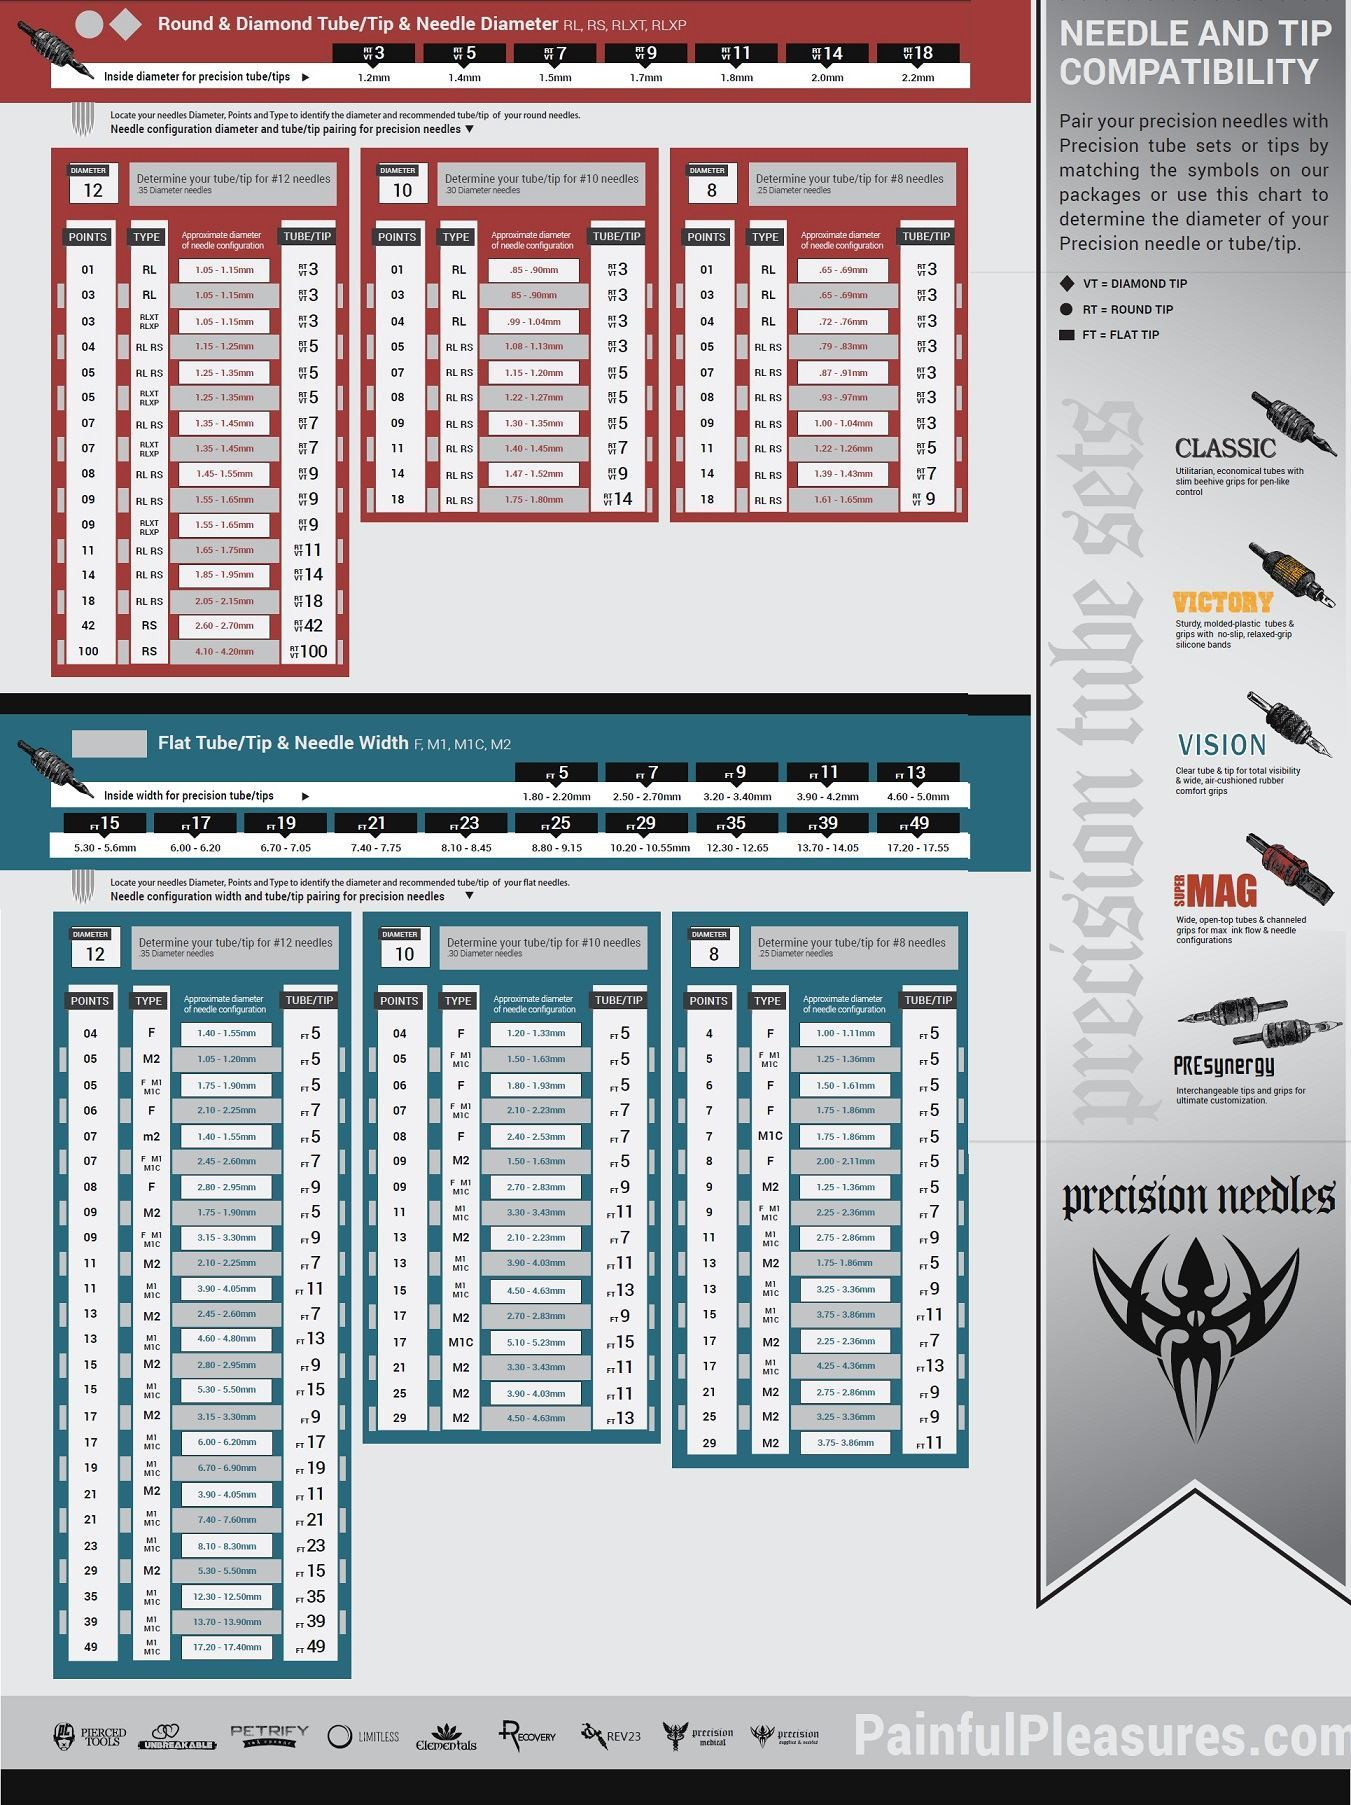 Tip Compatibility Chart